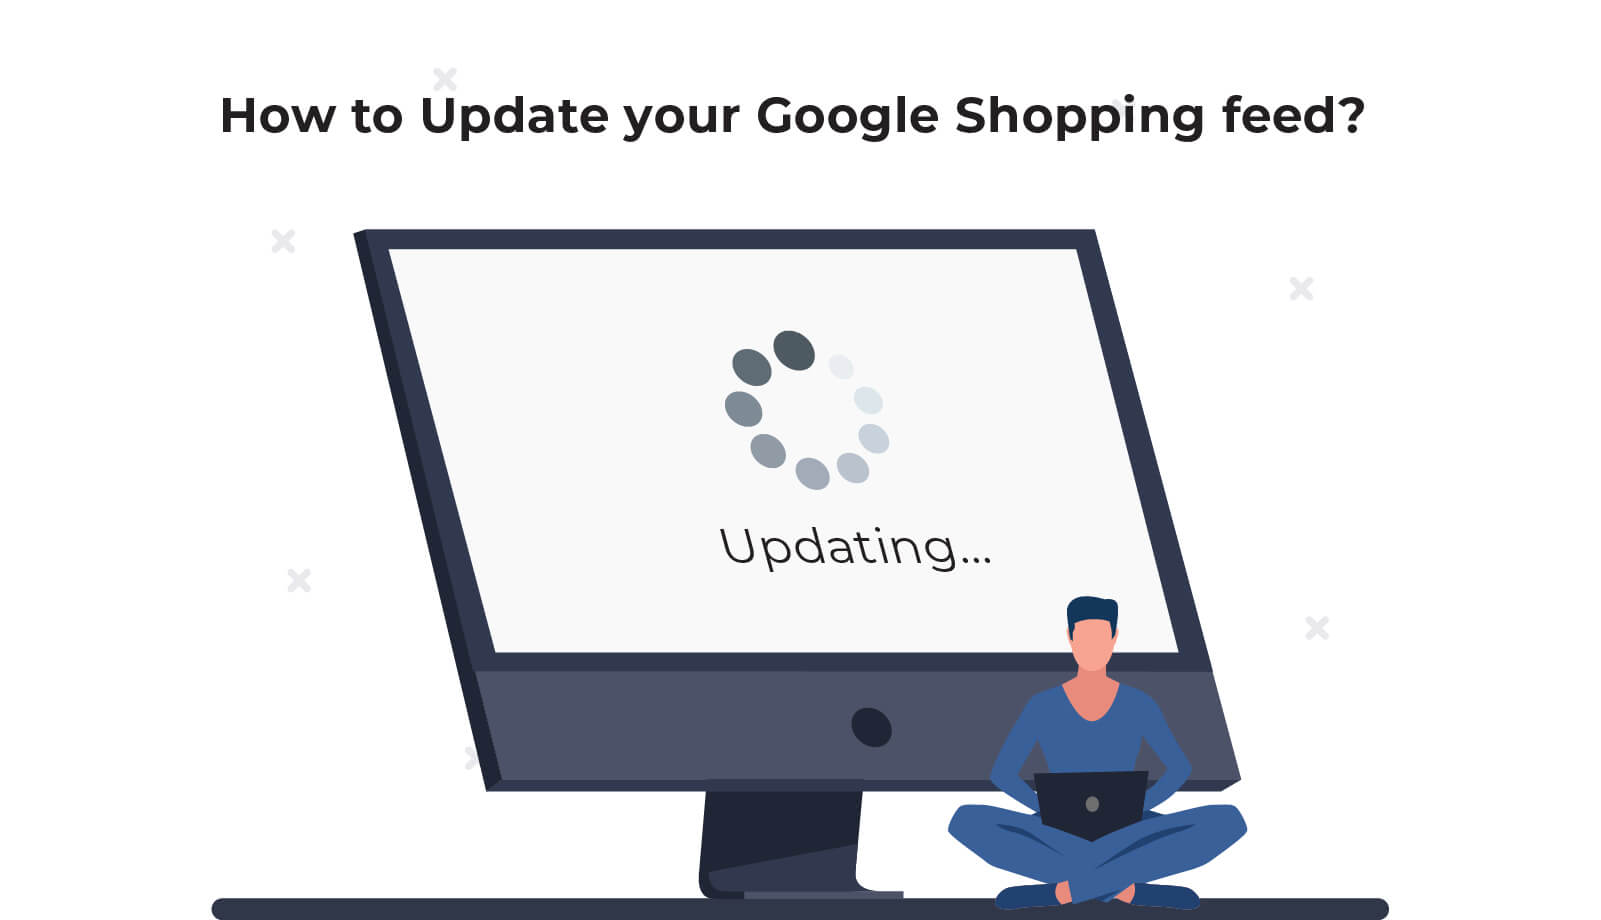 How to Update your Google Shopping feed